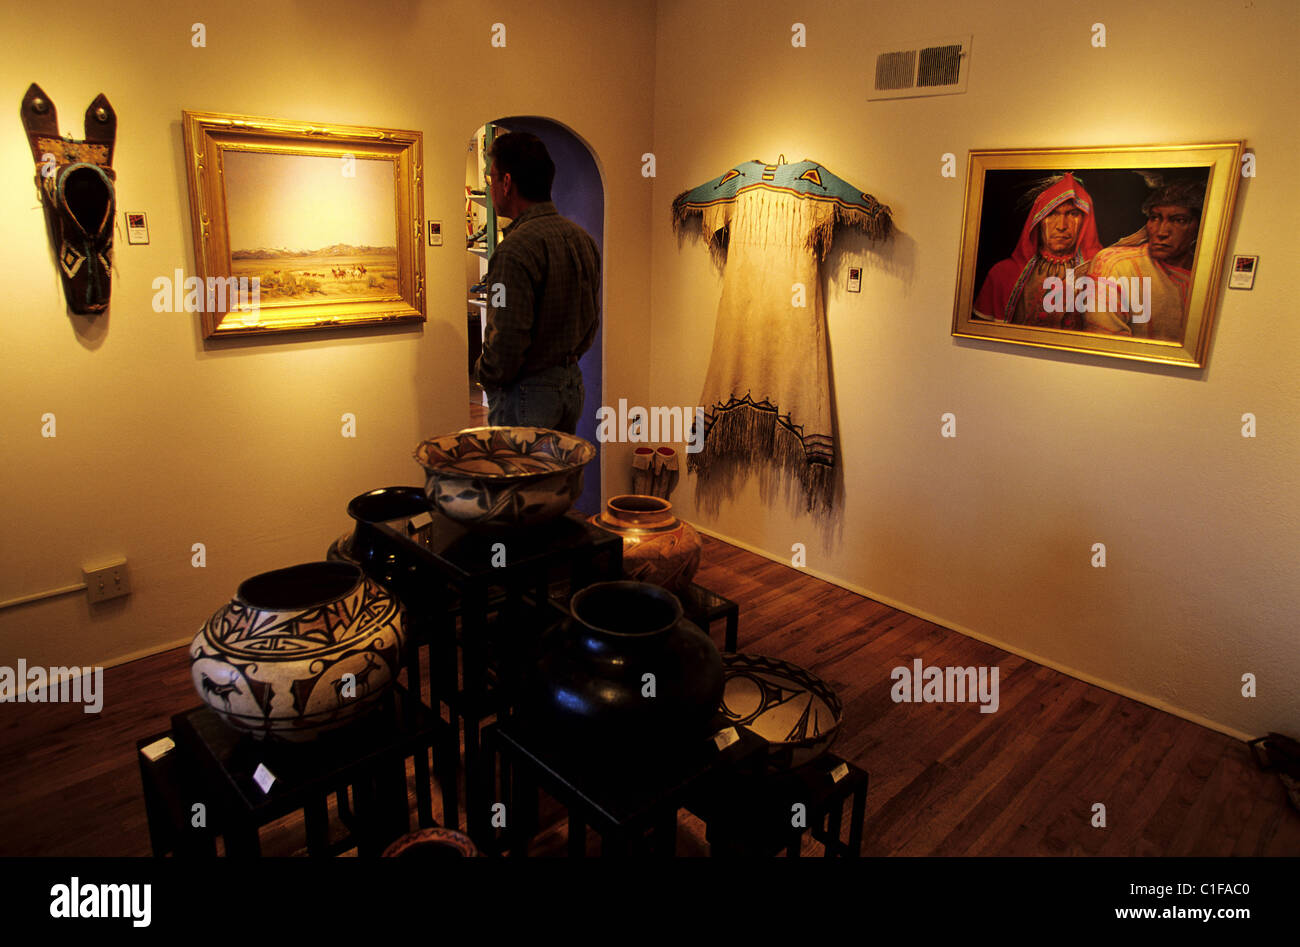 United States, New Mexico, Santa Fe, une galerie d'art en Canyon Road Photo Stock